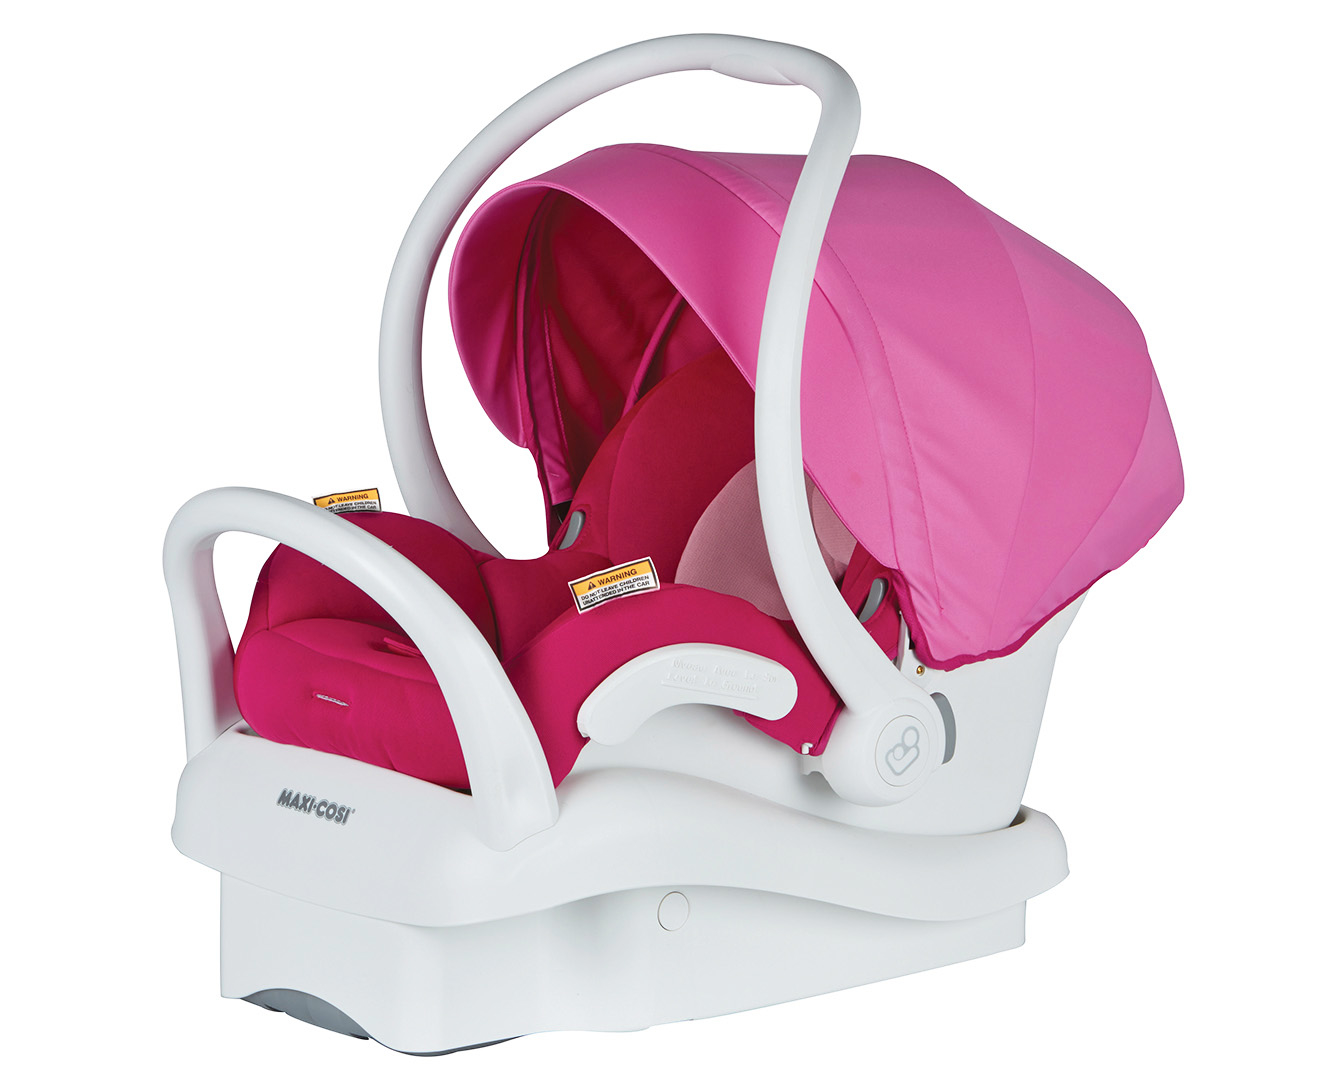 maxi cosi mico ap infant car seat capsule passionate pink great daily deals at australia 39 s. Black Bedroom Furniture Sets. Home Design Ideas